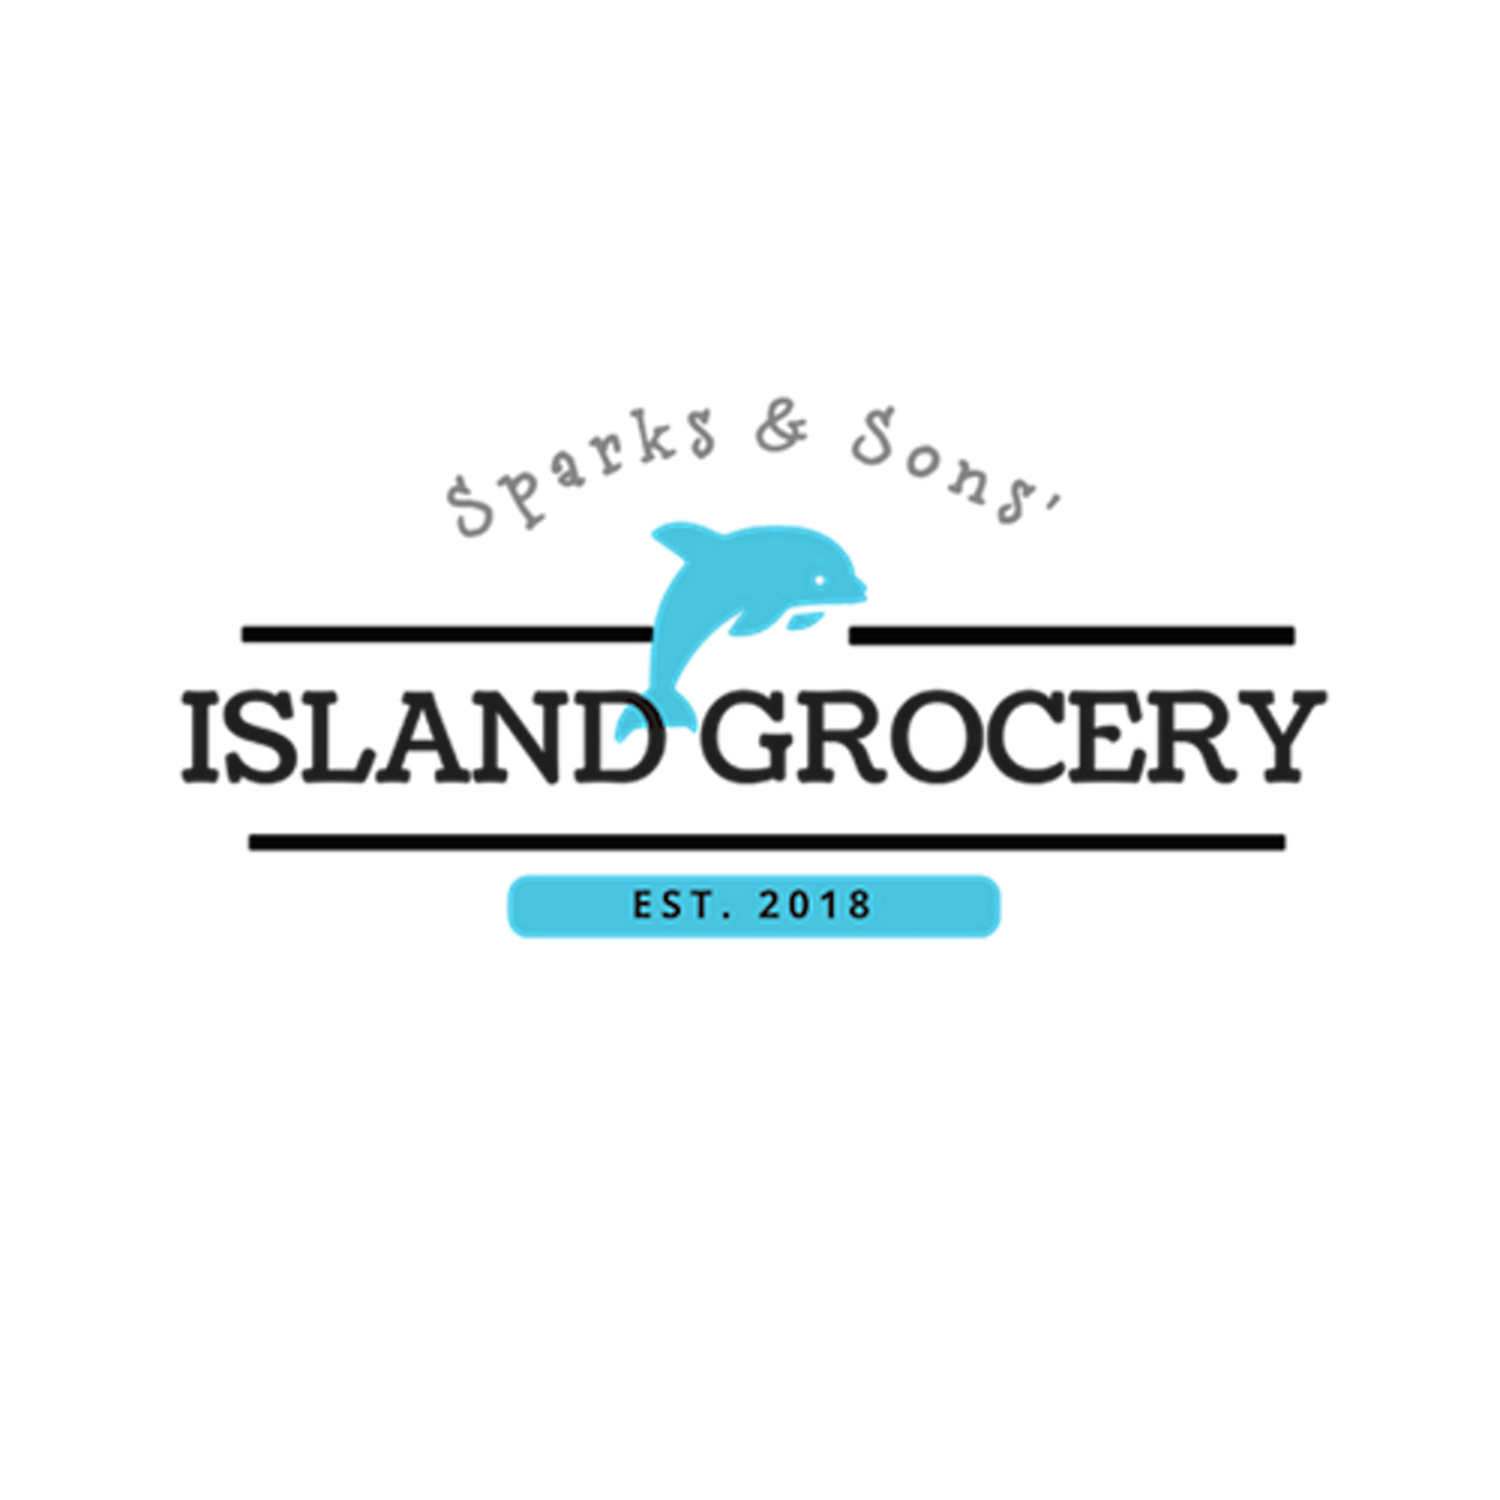 Sparks & Sons Island Grocery